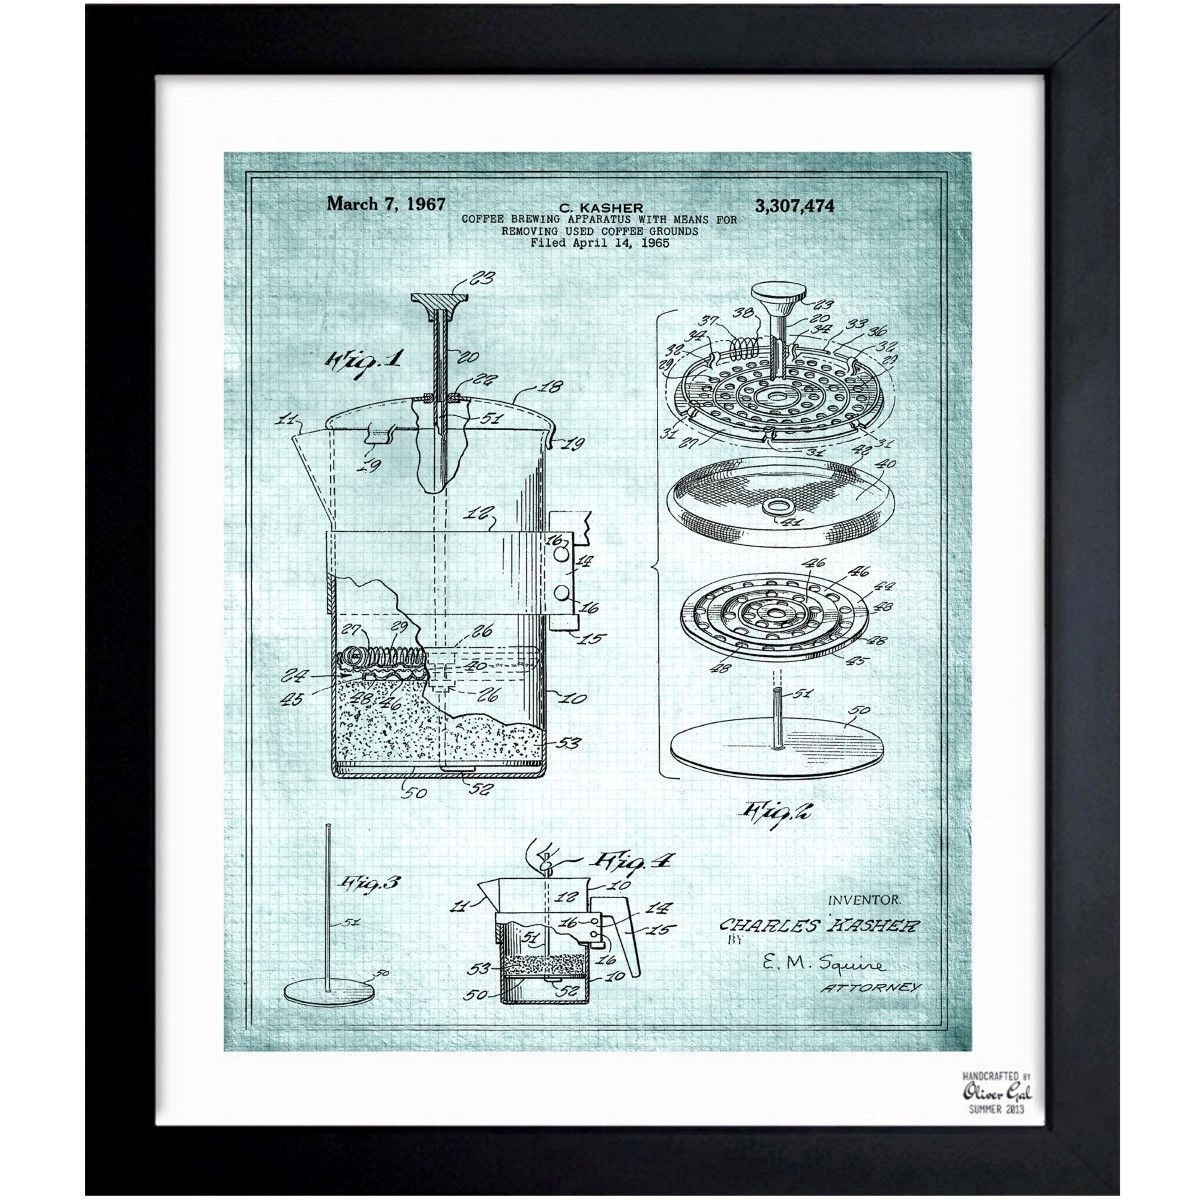 Oliver gal coffee brewing apparatus 1967 framed blueprint art oliver gal coffee brewing apparatus 1967 framed blueprint art malvernweather Gallery